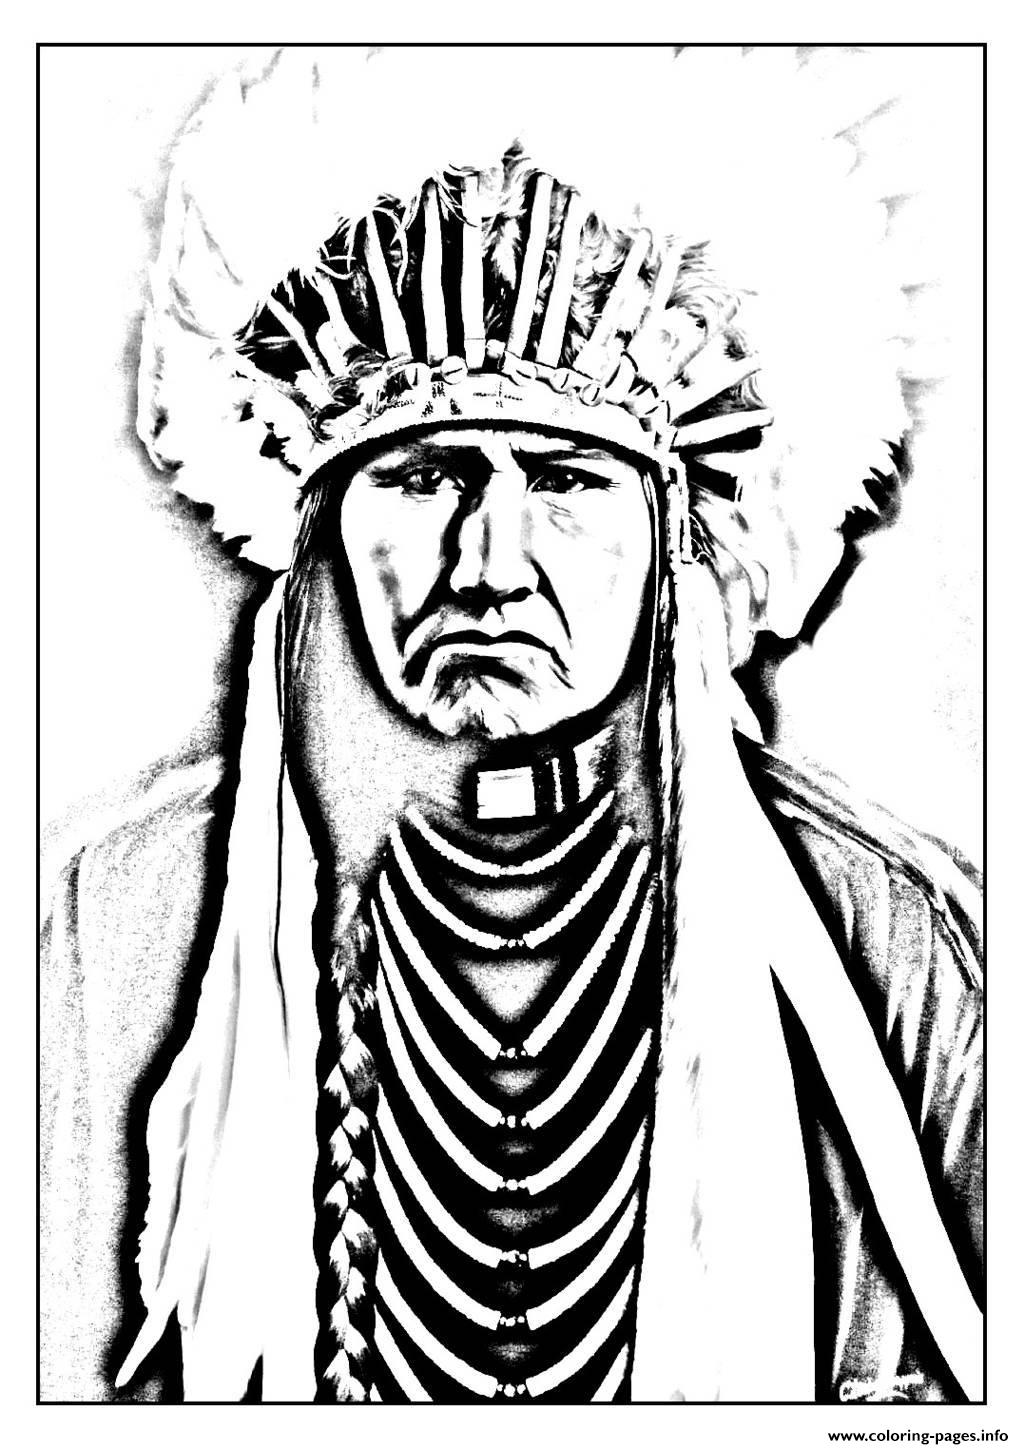 native american coloring pages for adults Adult Native American Indian Coloring Pages Printable native american coloring pages for adults